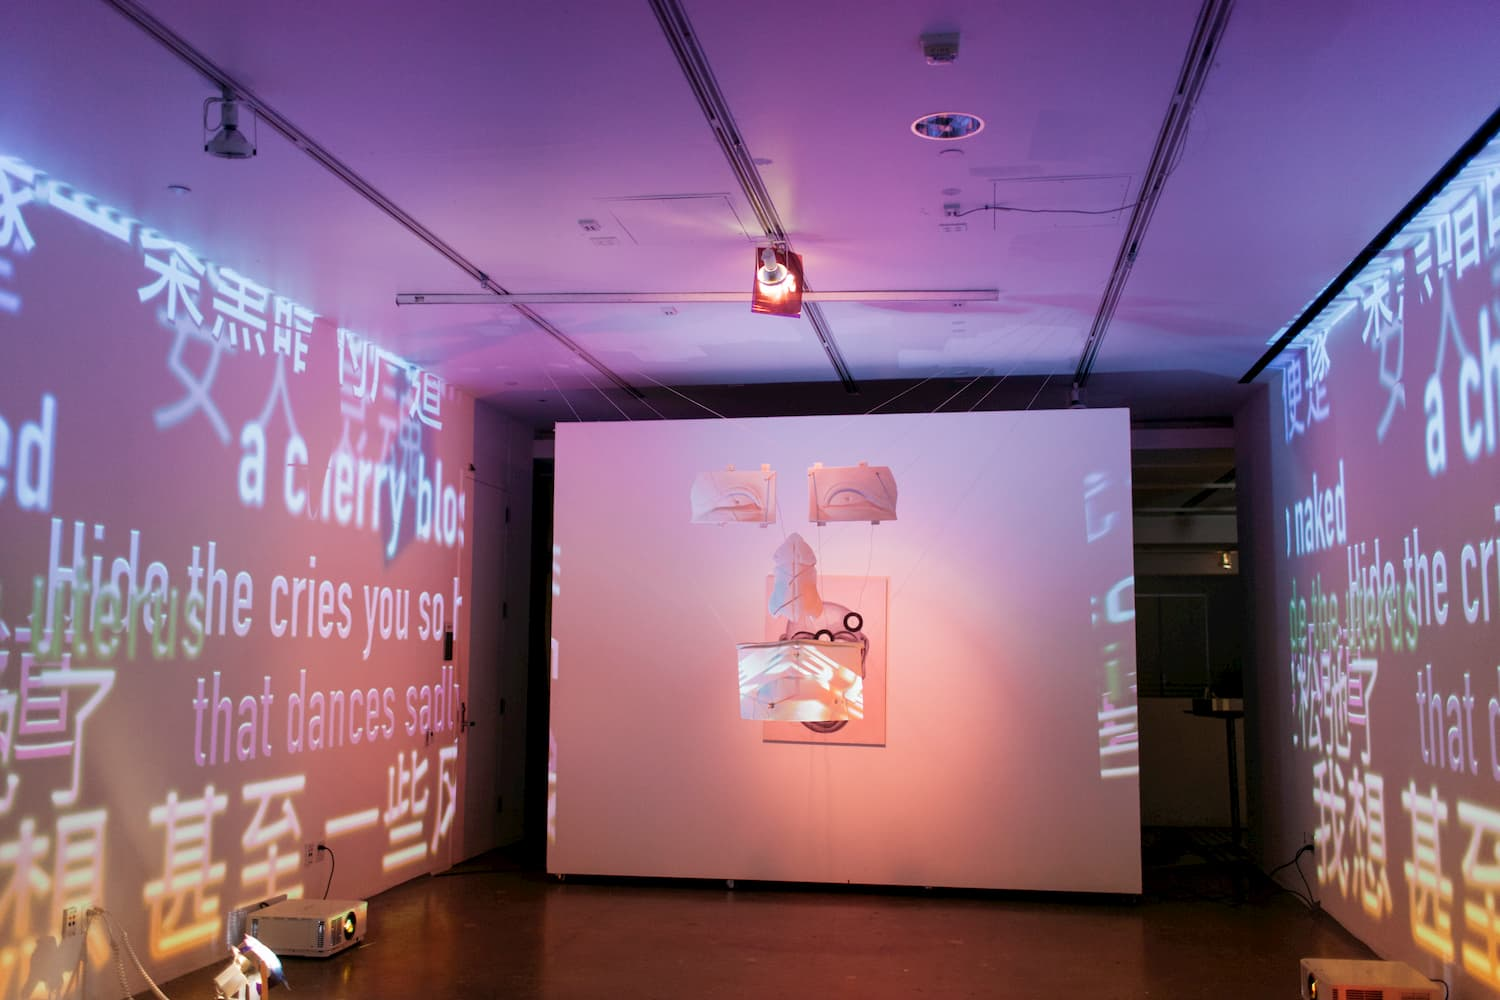 Projection work of Chinese characters. The projection work is in a pink hue.